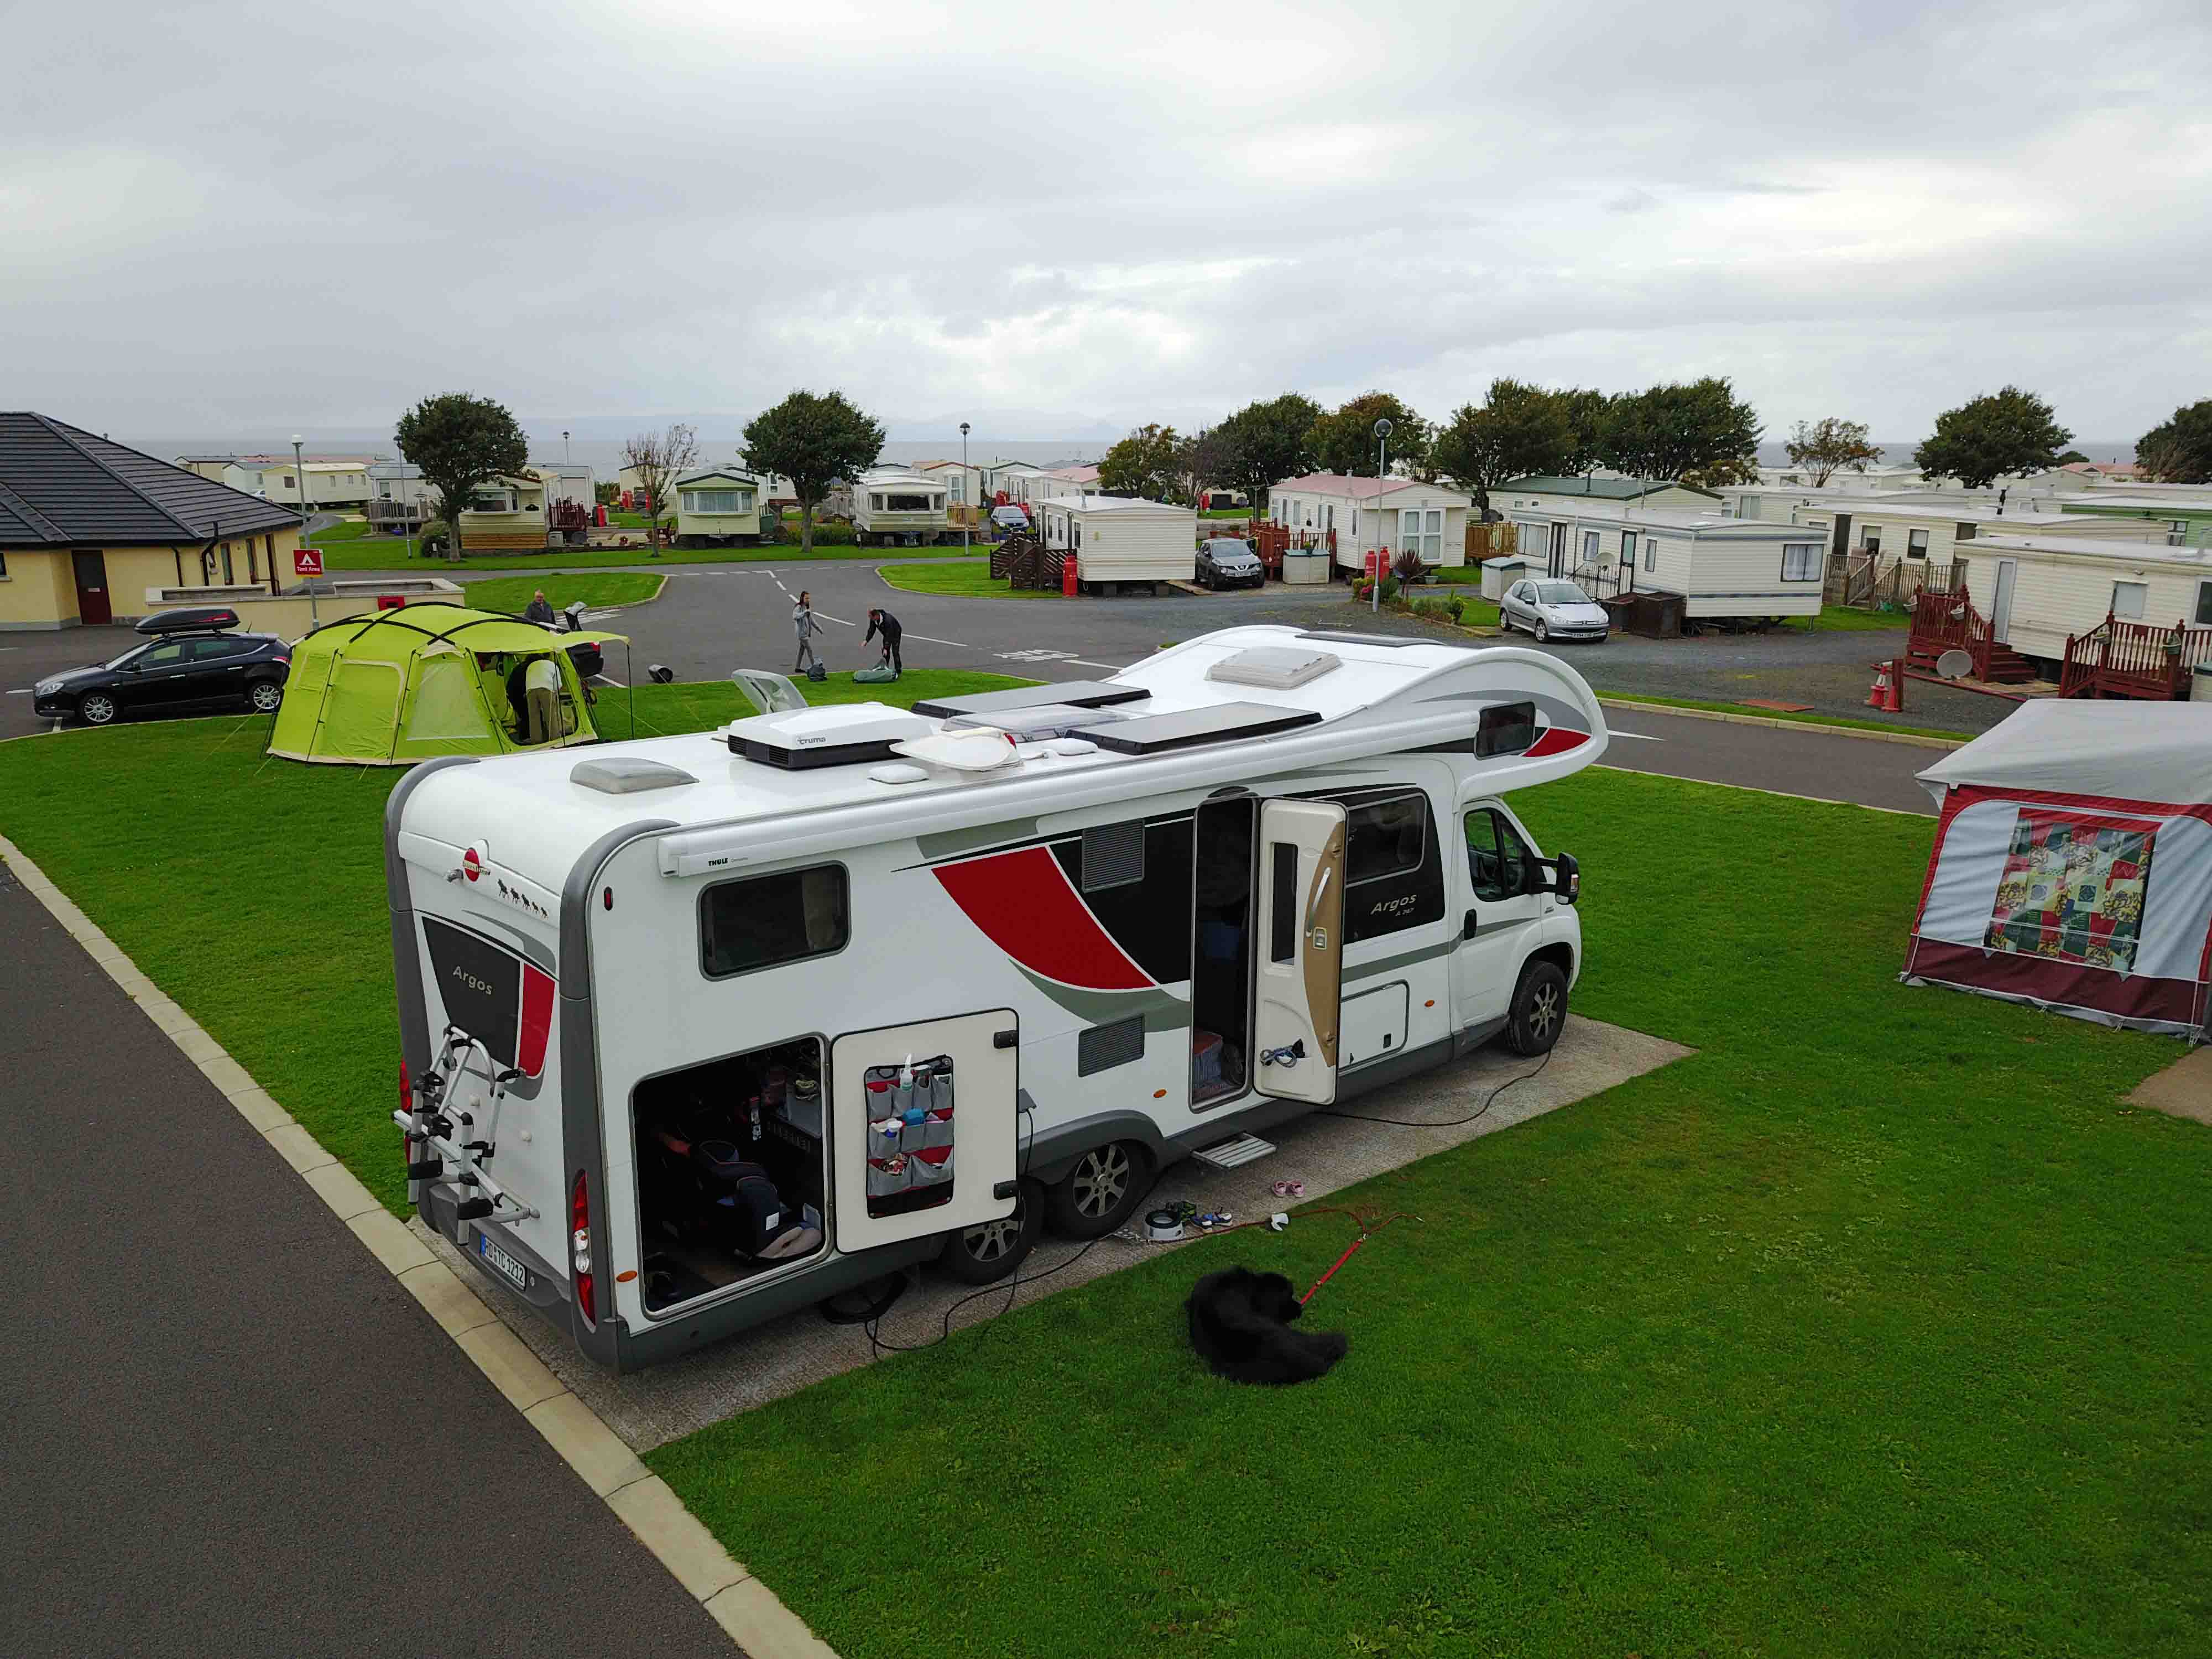 Redgates Holiday Park